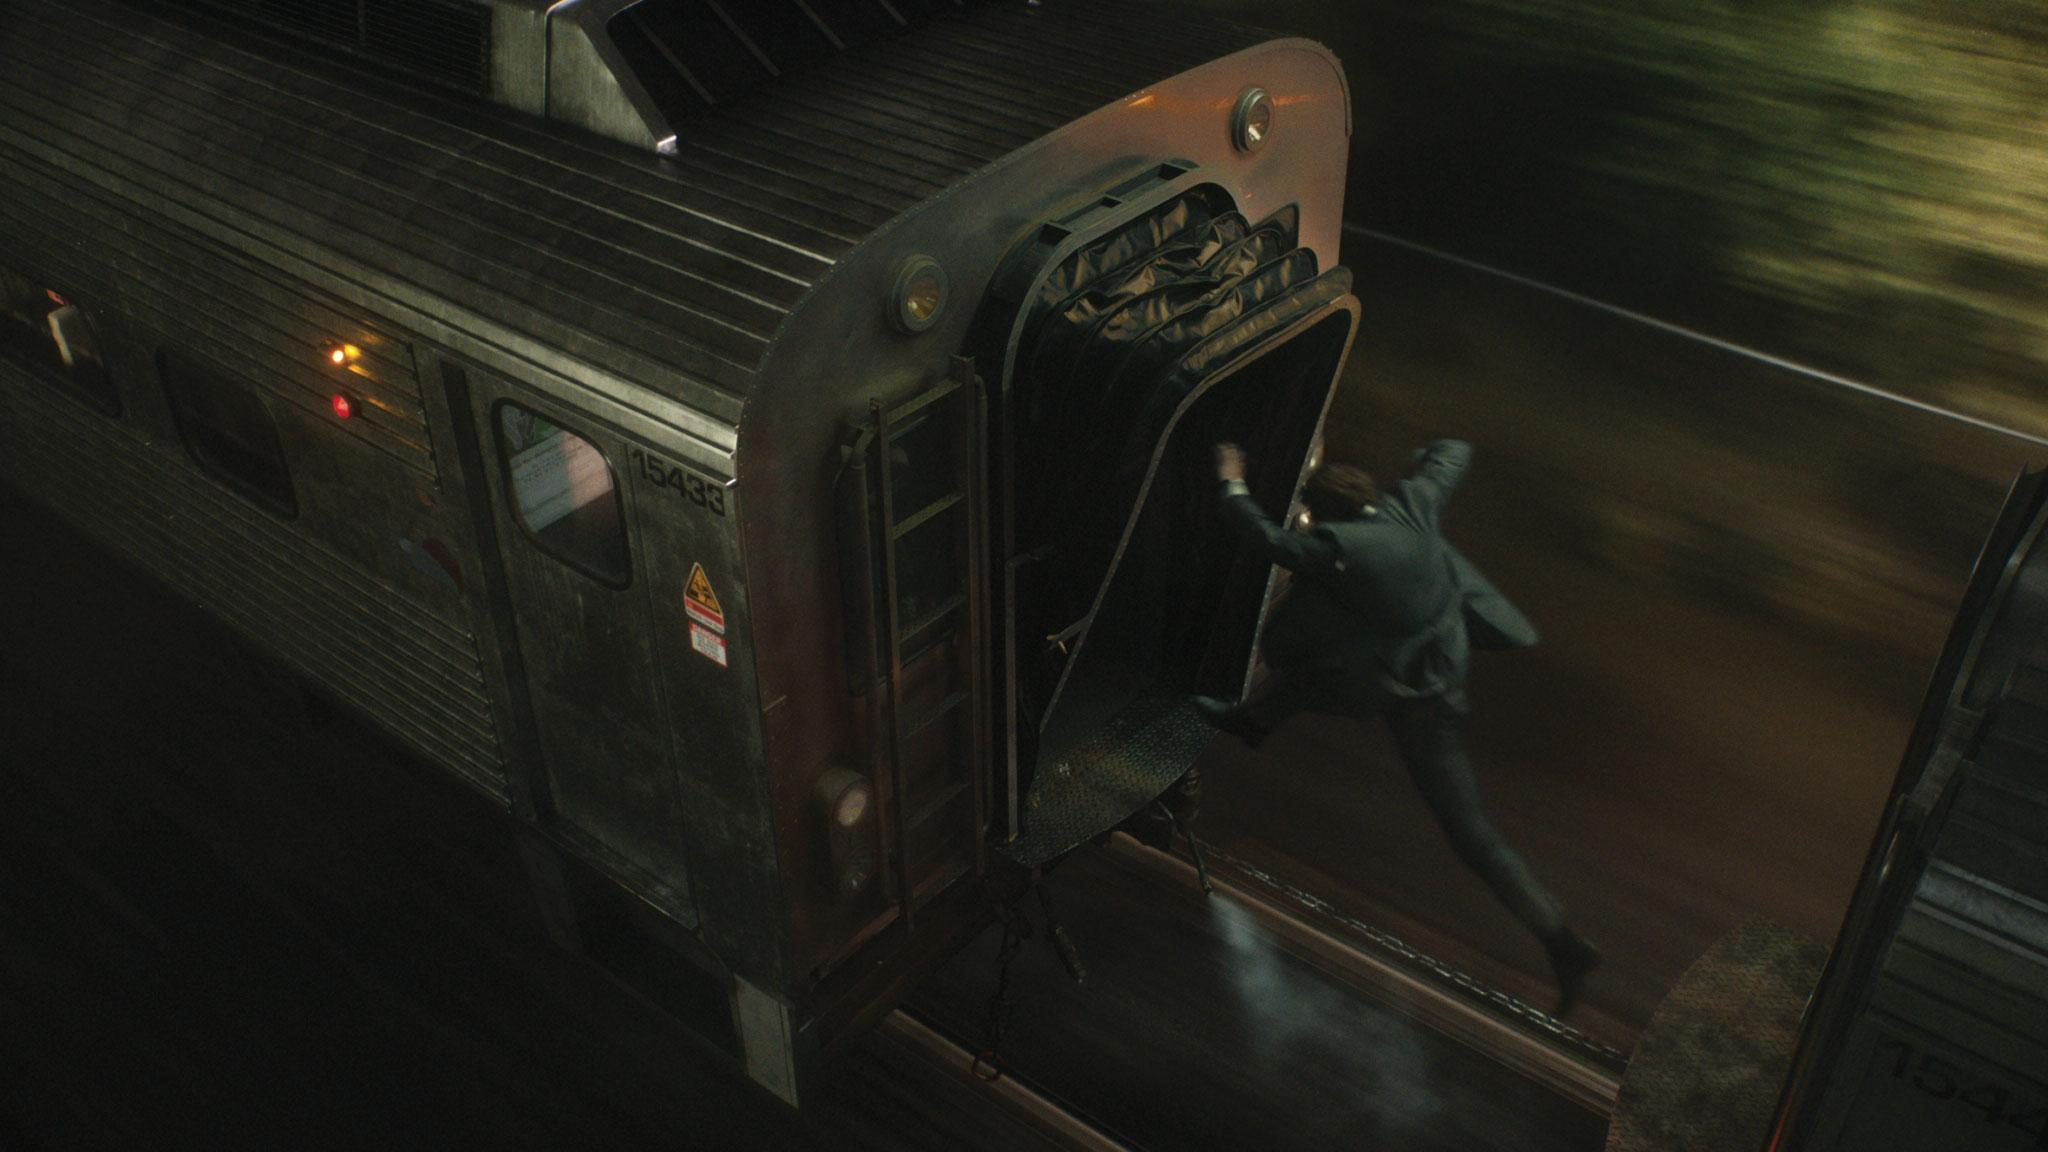 Liam Neeson jumps between train carriages